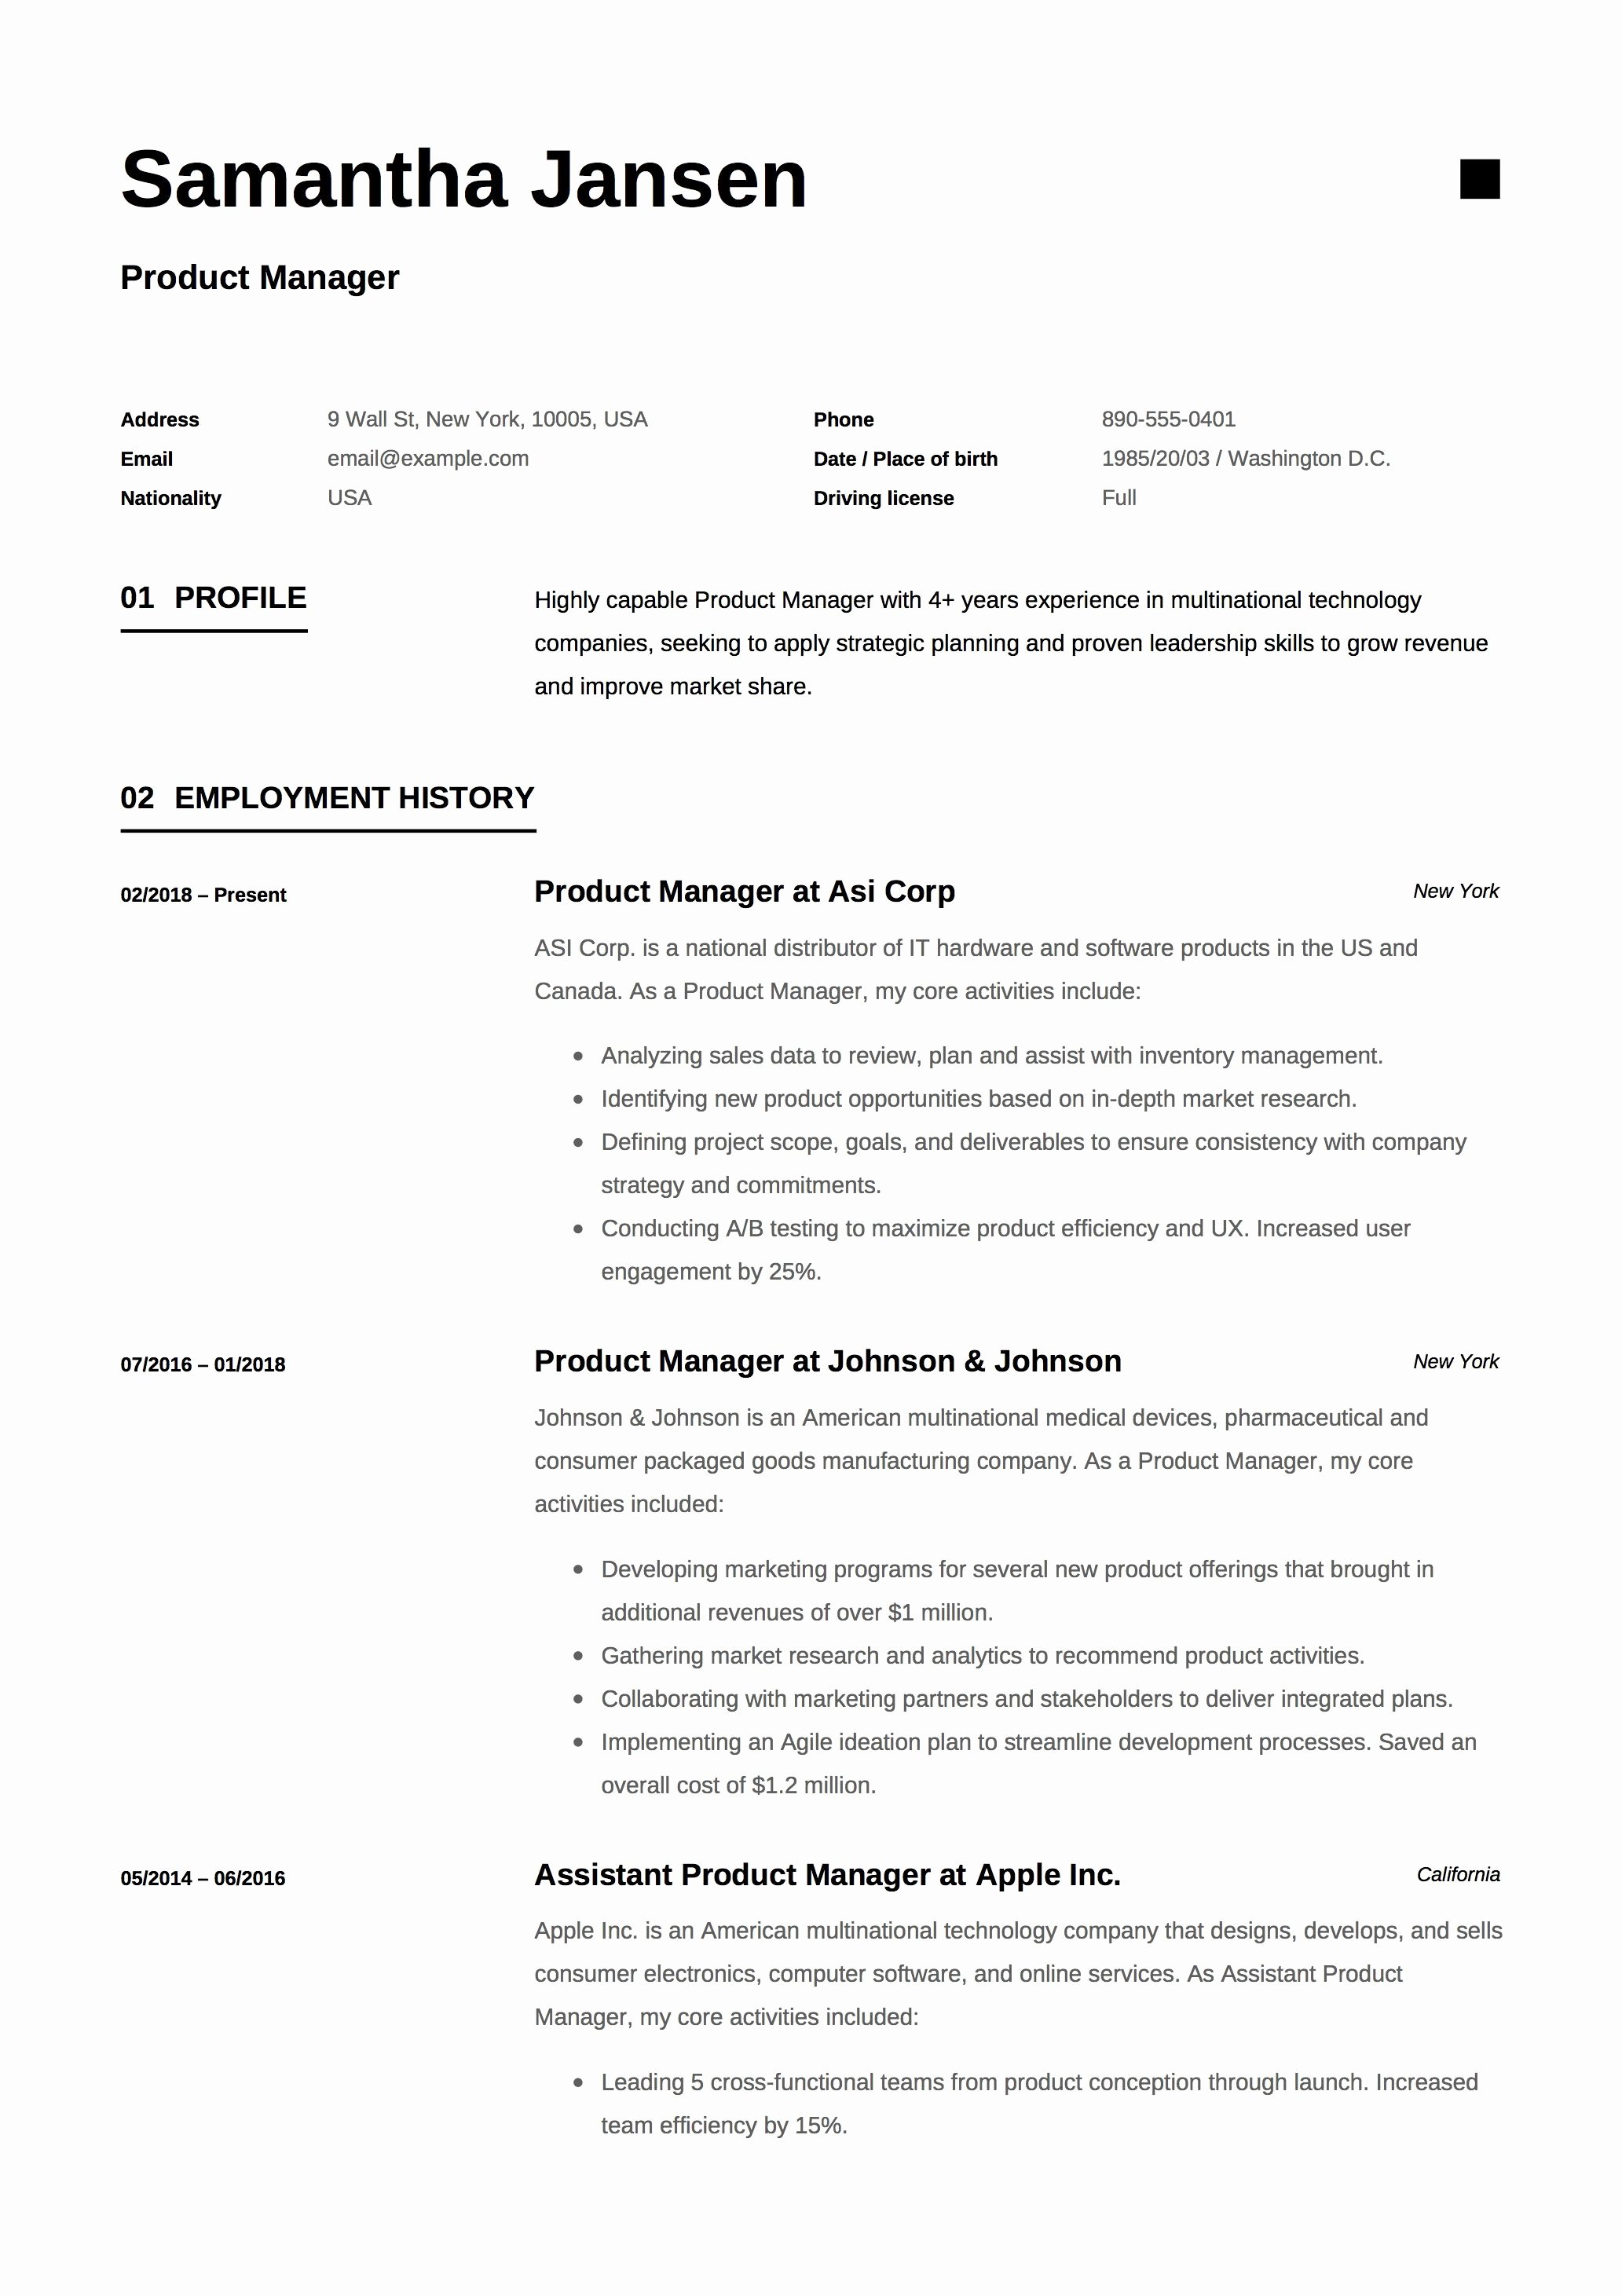 Product Manager Resume Template Luxury Product Manager Resume Sample Template Example Cv